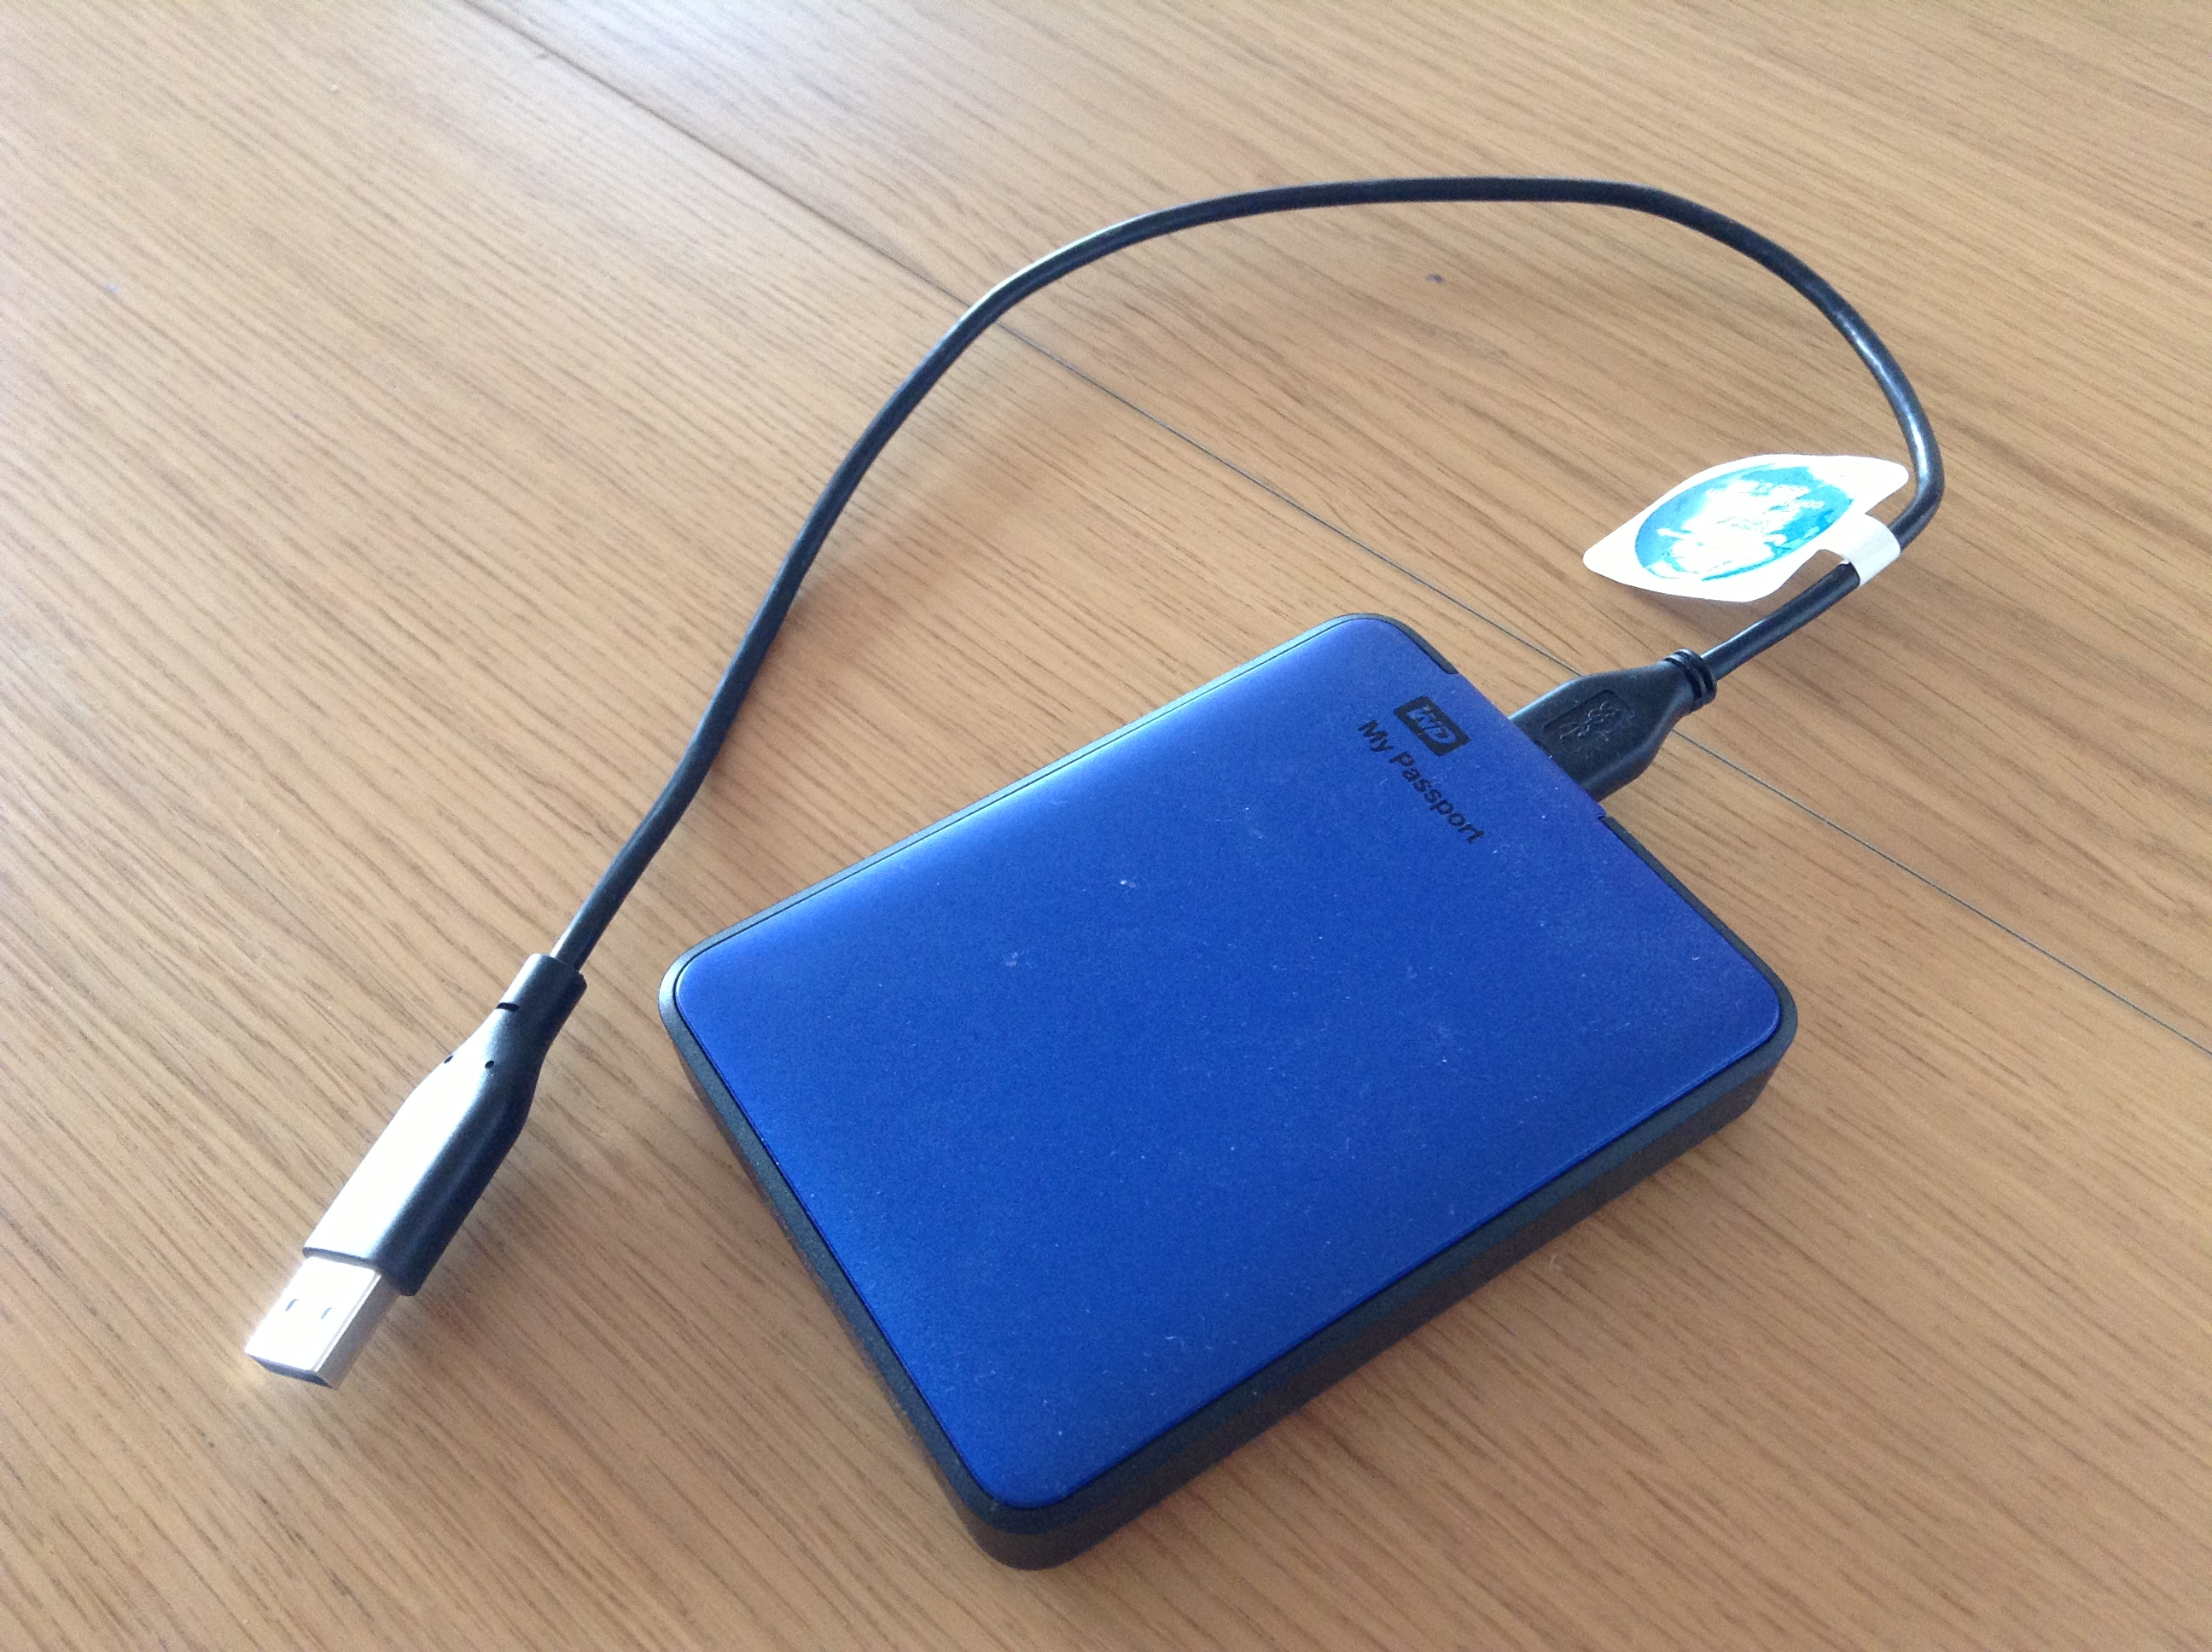 External Hard Disk Drive Hdd Review Touro Mx3 And My Passport By Wd 1tb